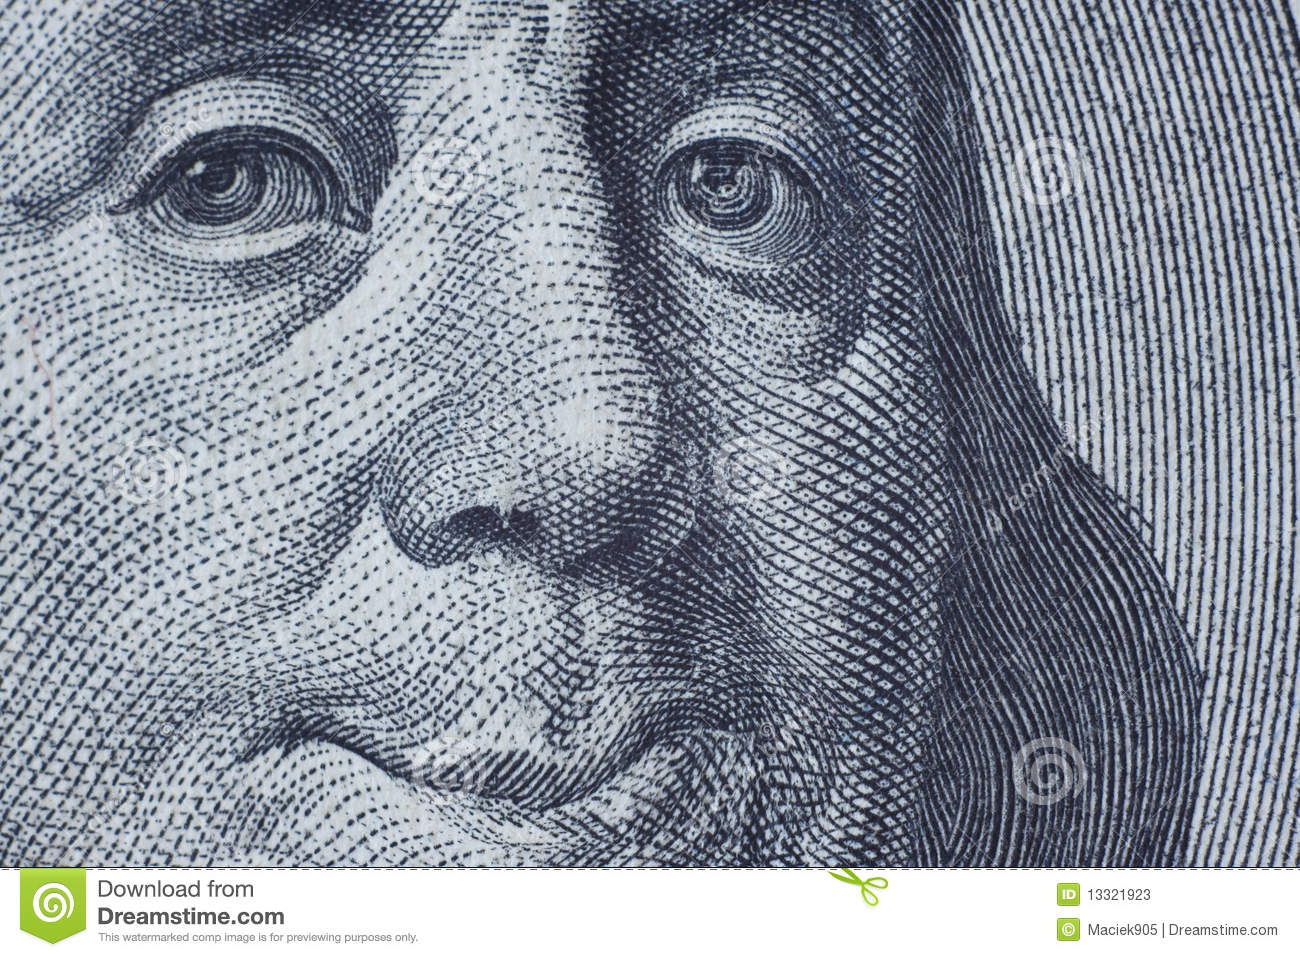 Benjamin Franklin smiling to you.